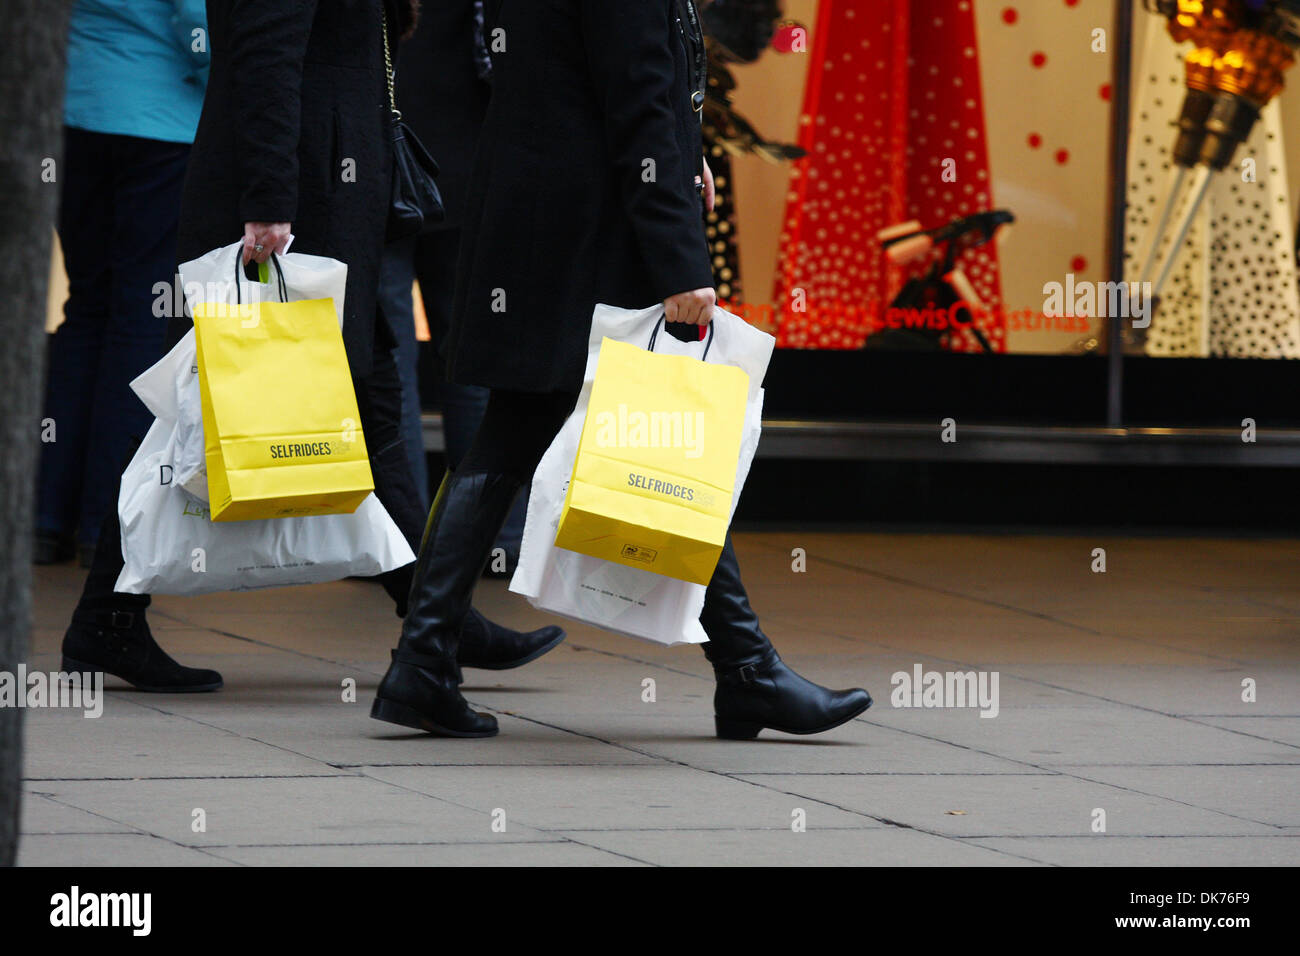 Part of two people carrying Selfridges and other shopping bags ...